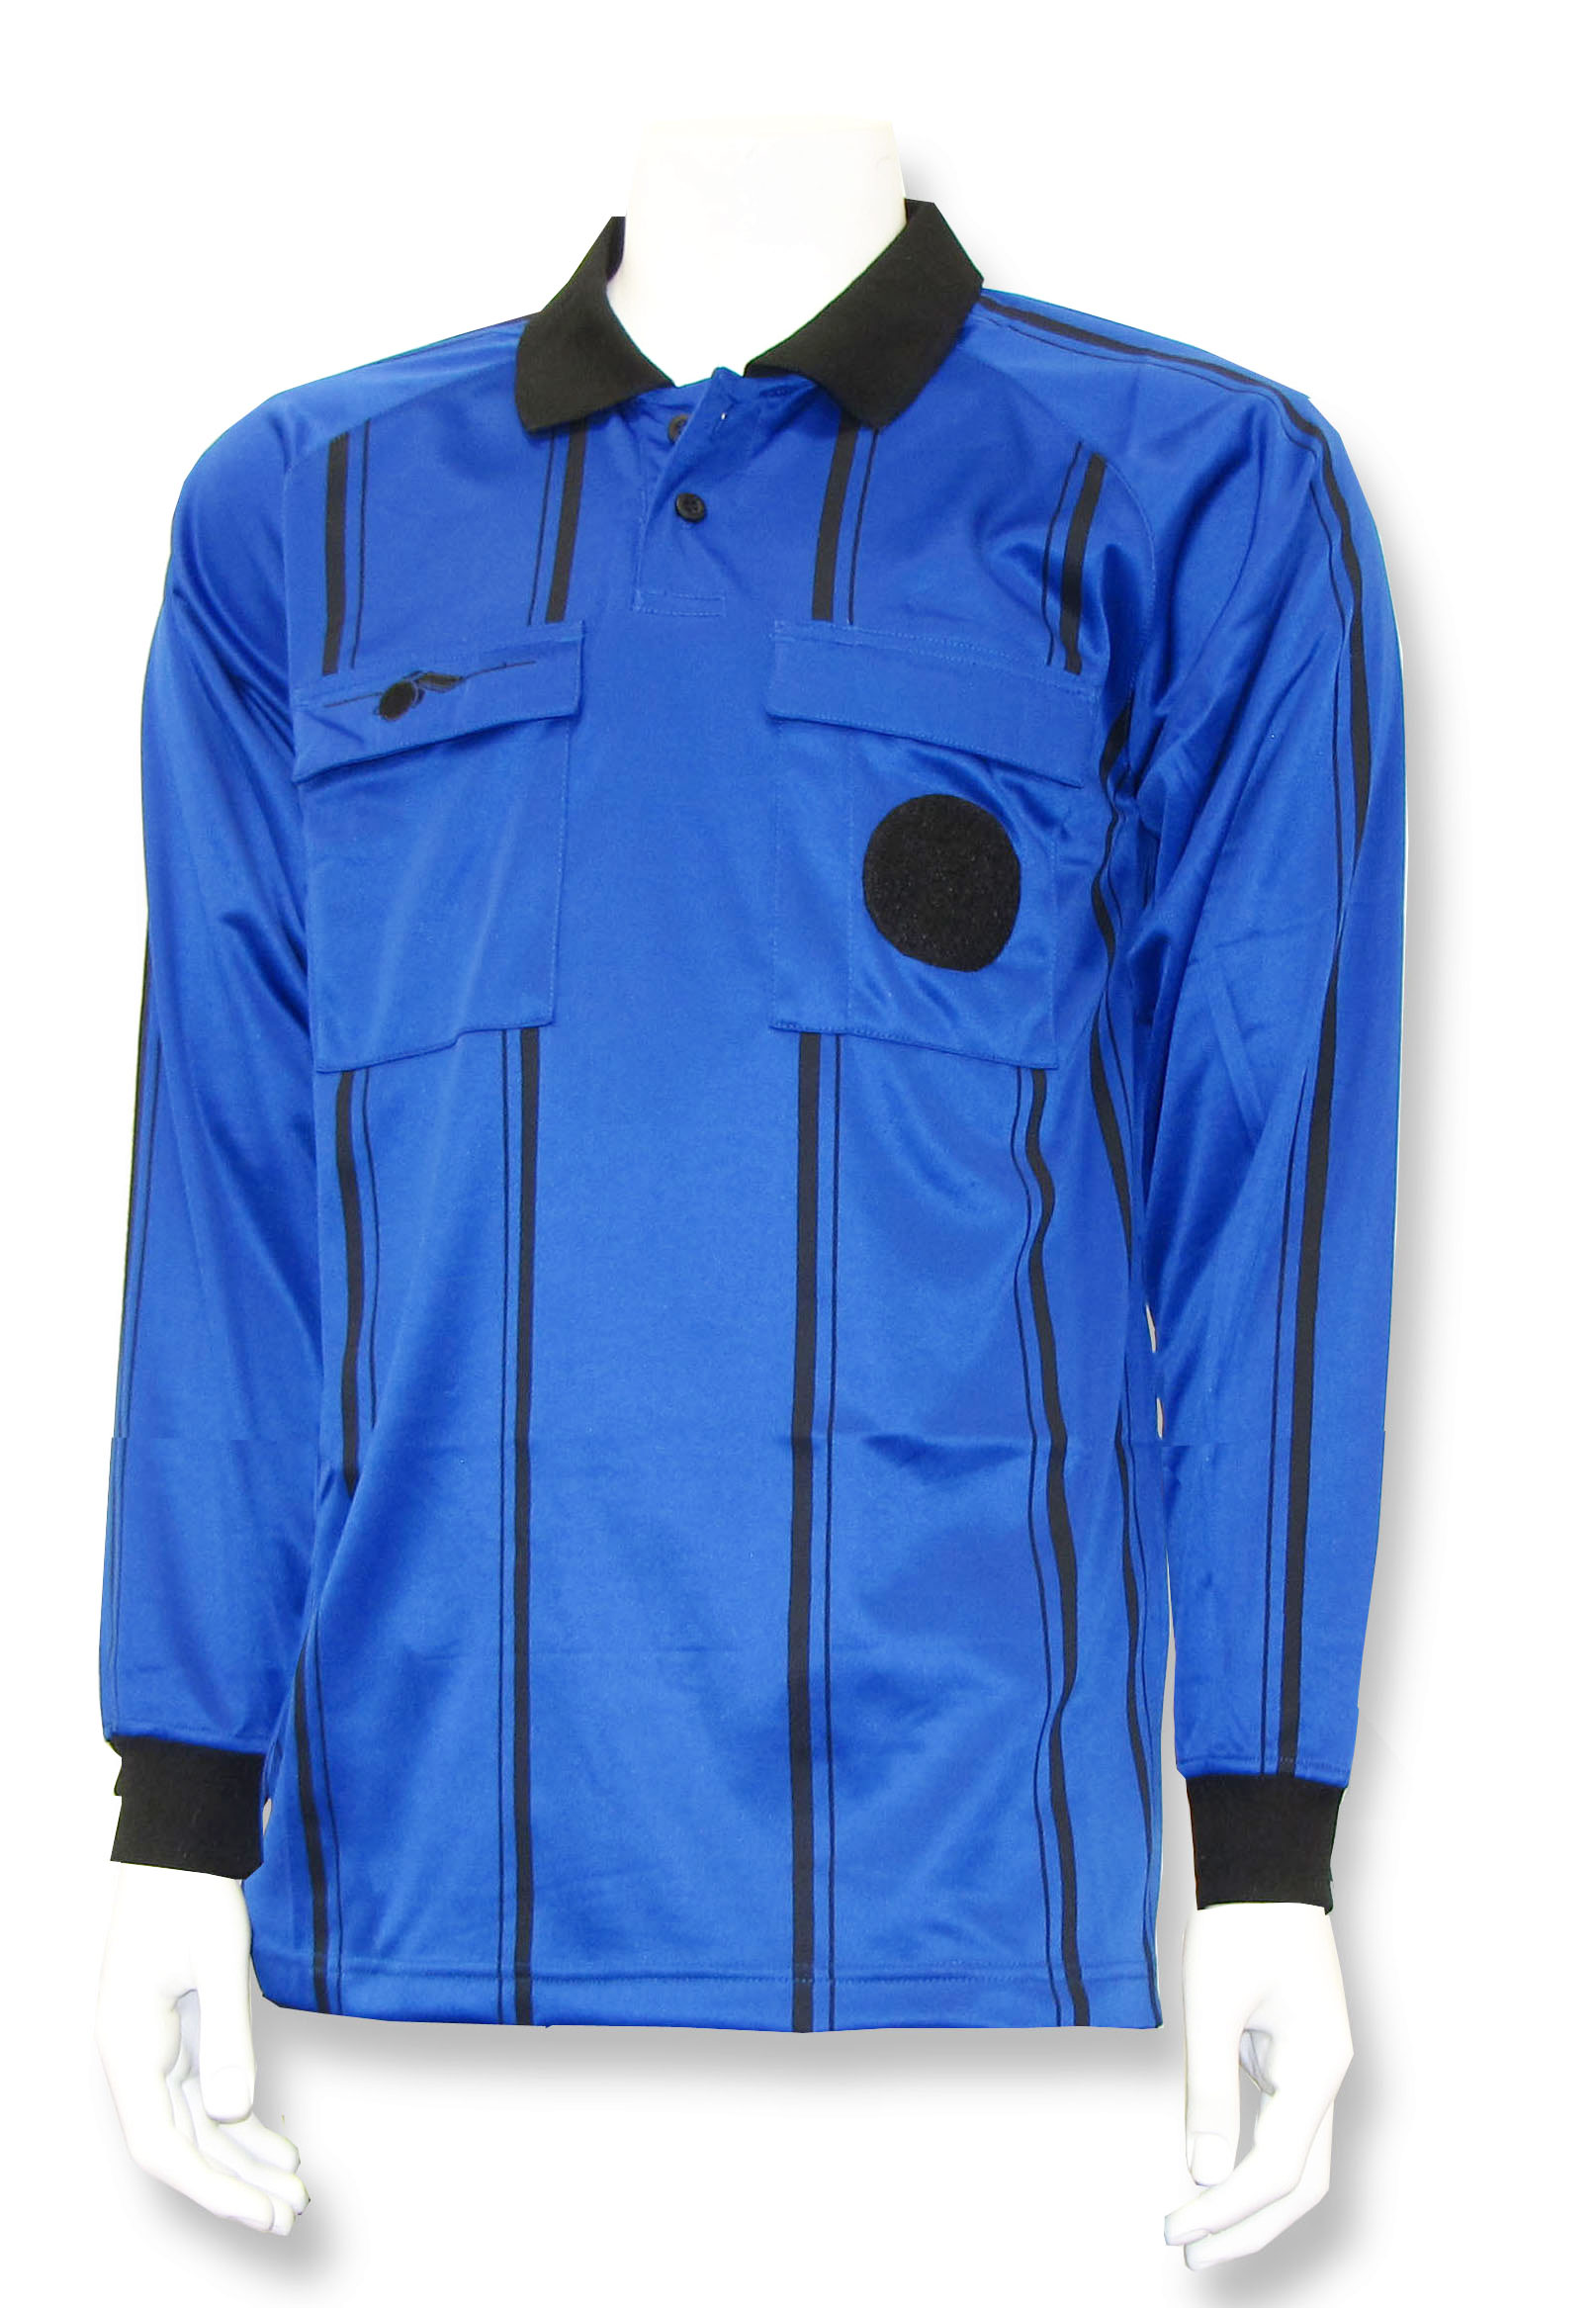 Soccer referee long sleeve jersey by Whistleline in blue